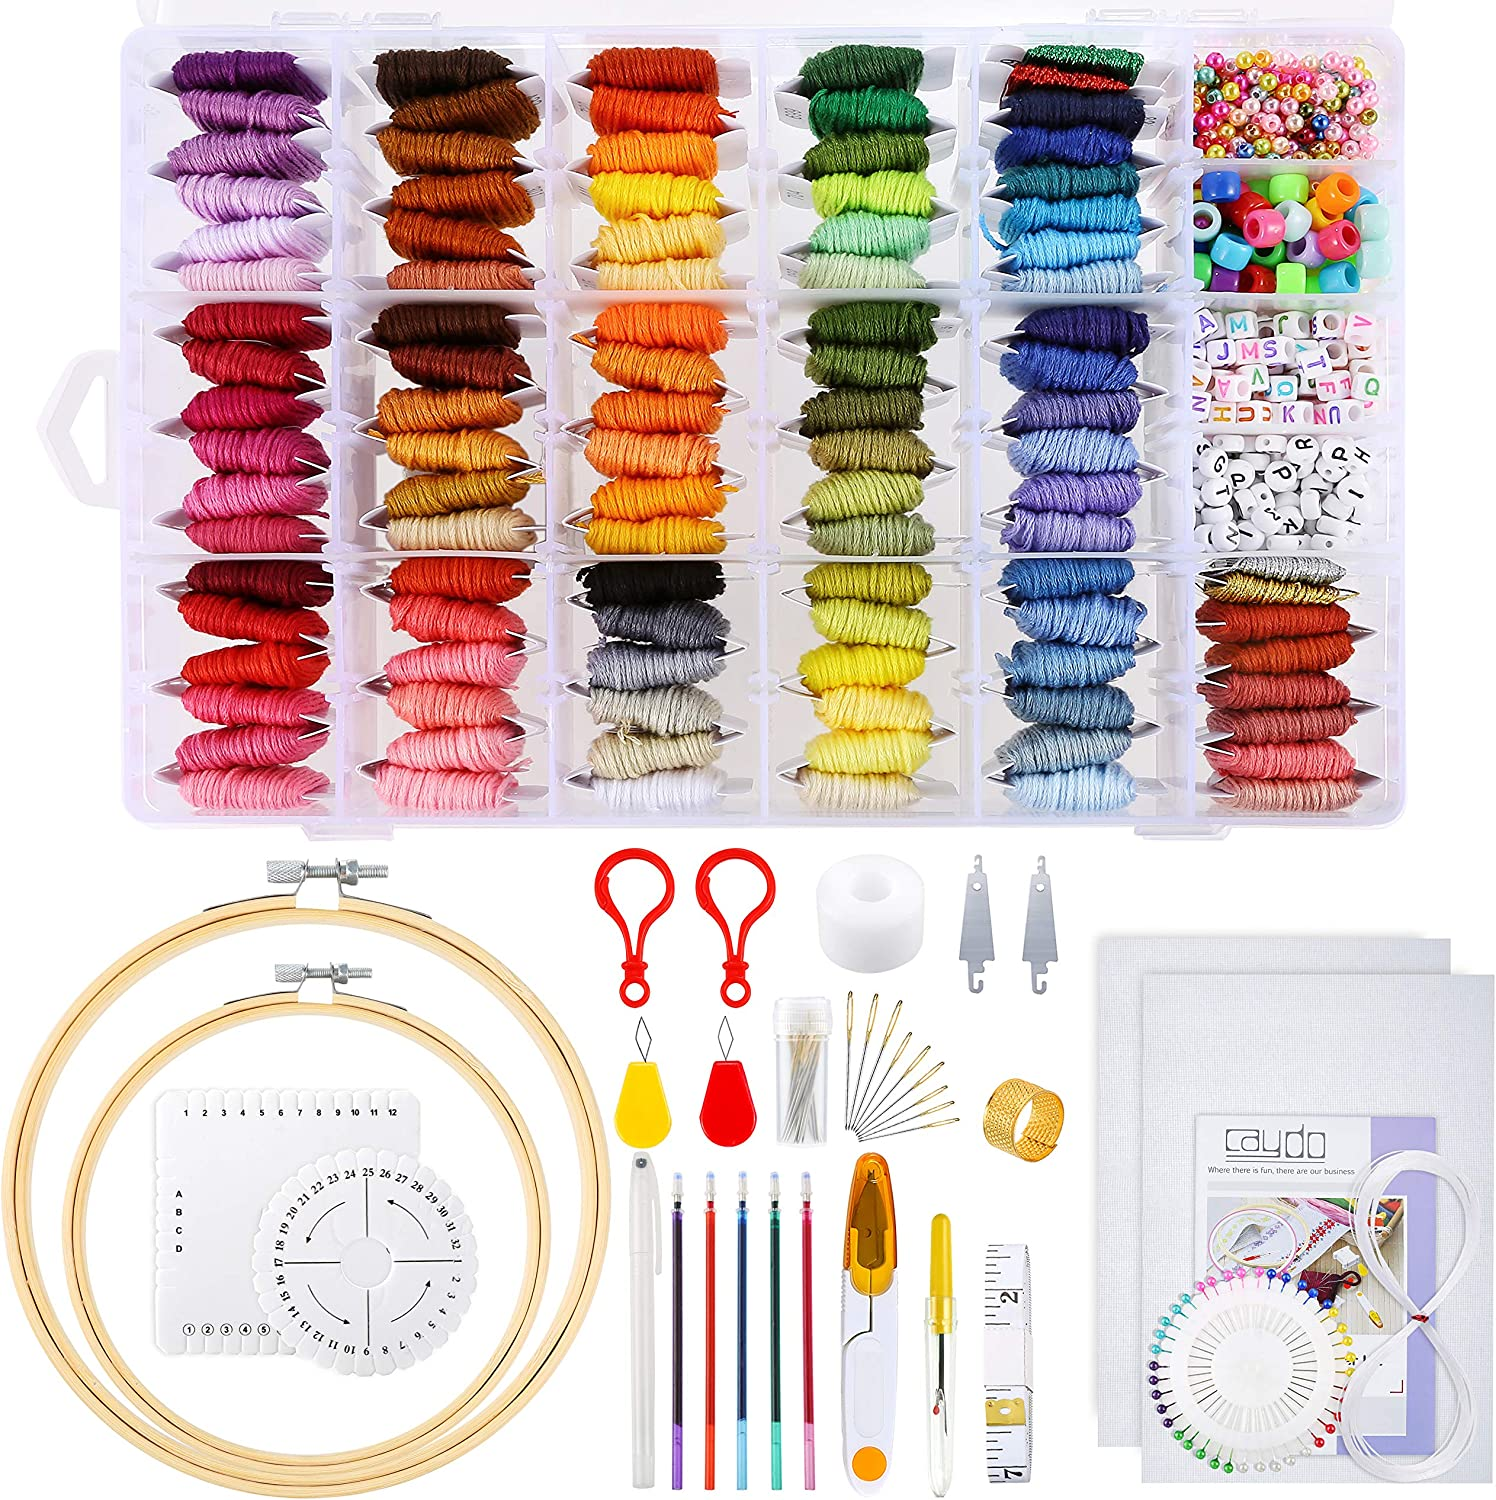 Caydo Bracelet Making Beads Embroidery Kit Embroidery Hoops and Letter Beads for Adults and Kids Beginners with 100 Color Threads with Organizer Box Aida Cloth